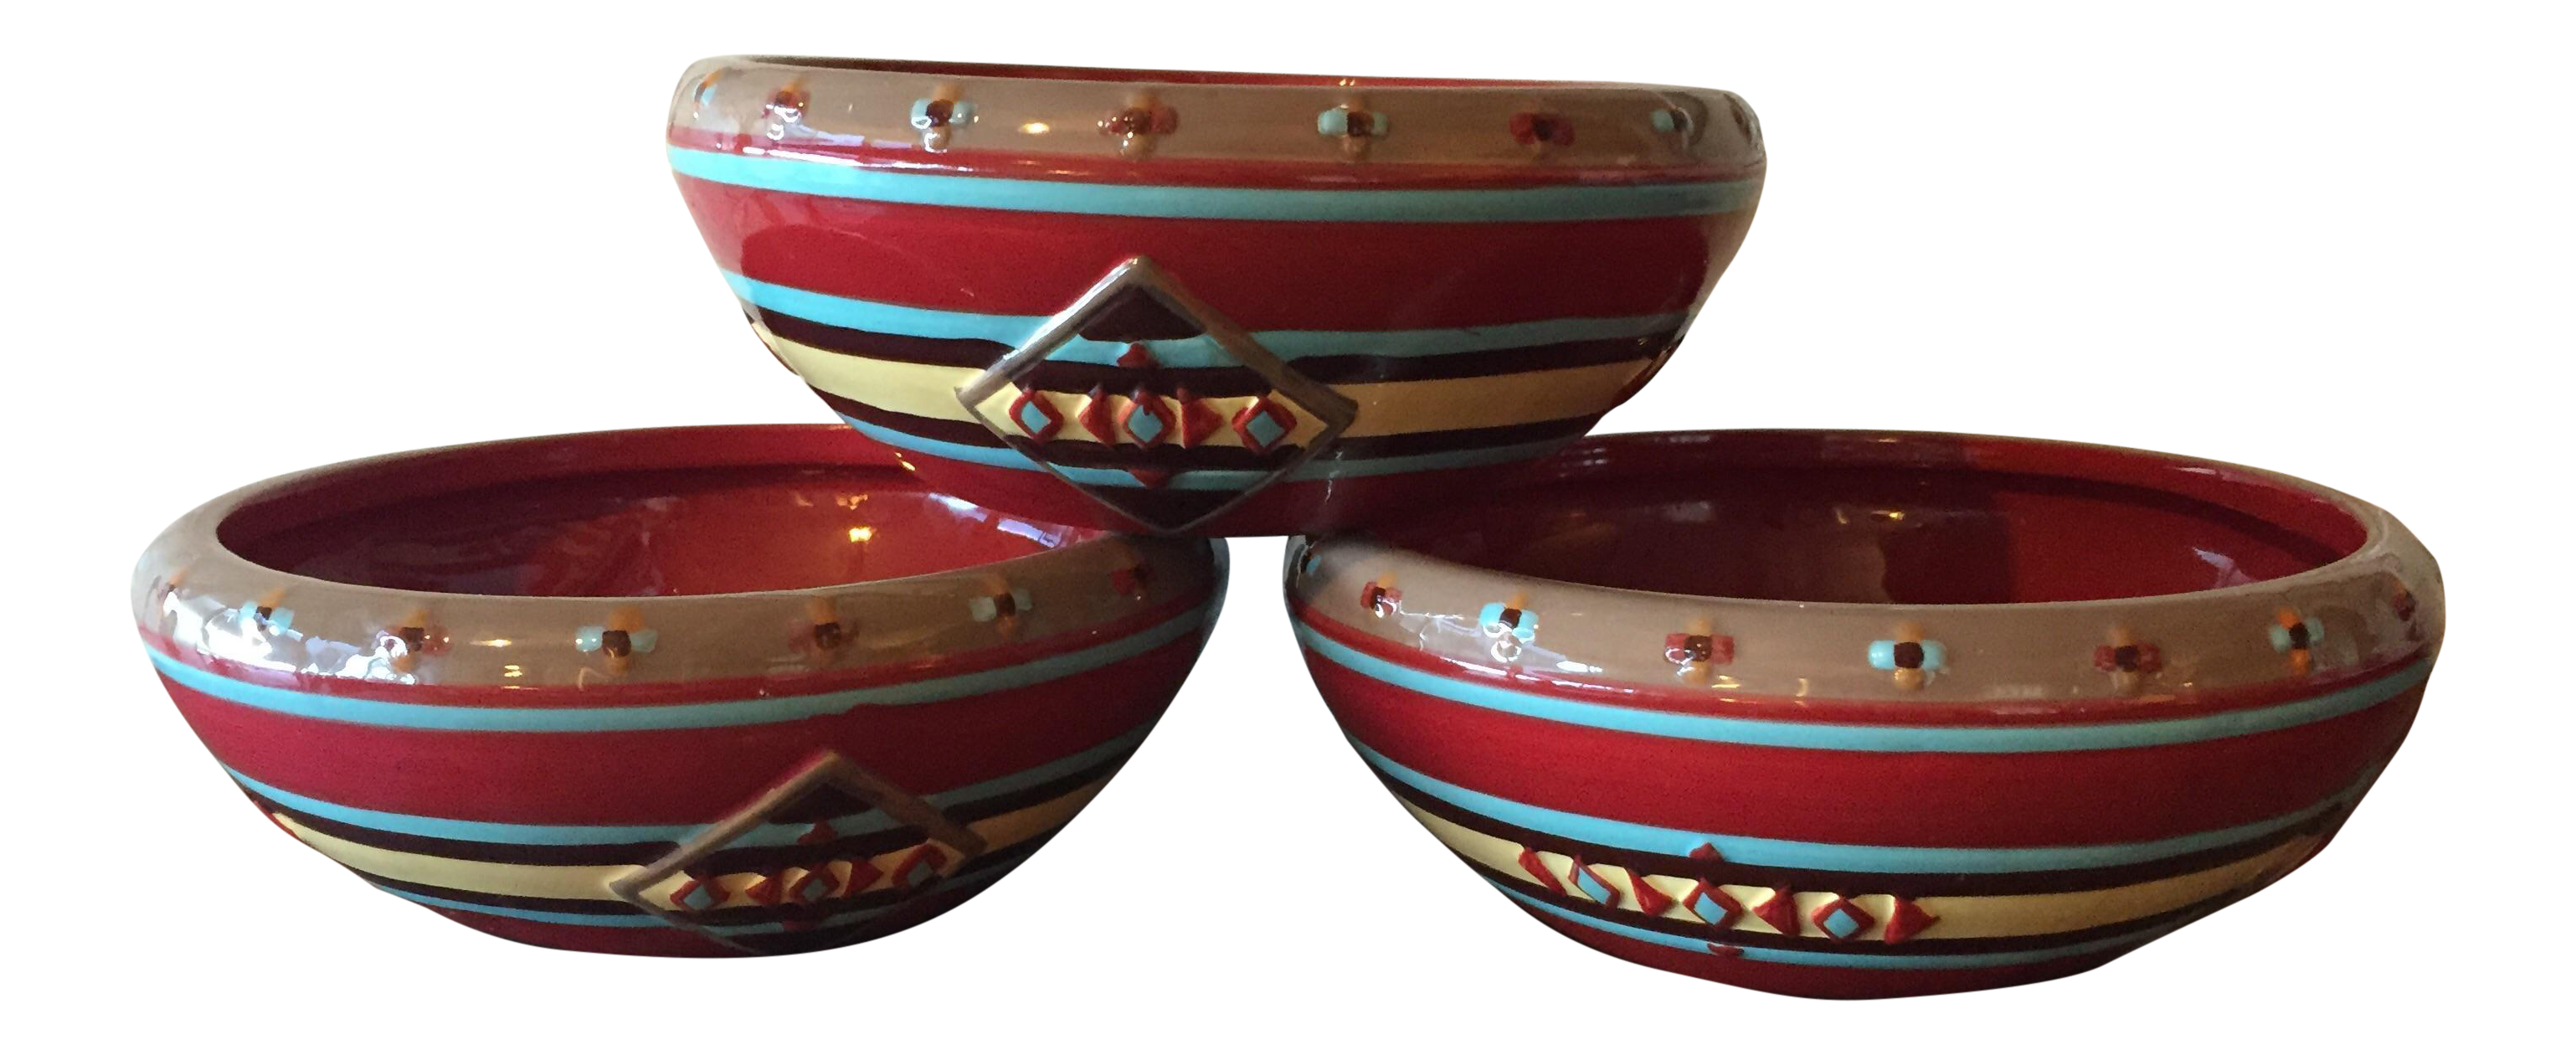 Pendleton Home Collection Cereal Bowls - Set of 3  sc 1 st  Chairish & Pendleton Home Collection Cereal Bowls - Set of 3 | Chairish